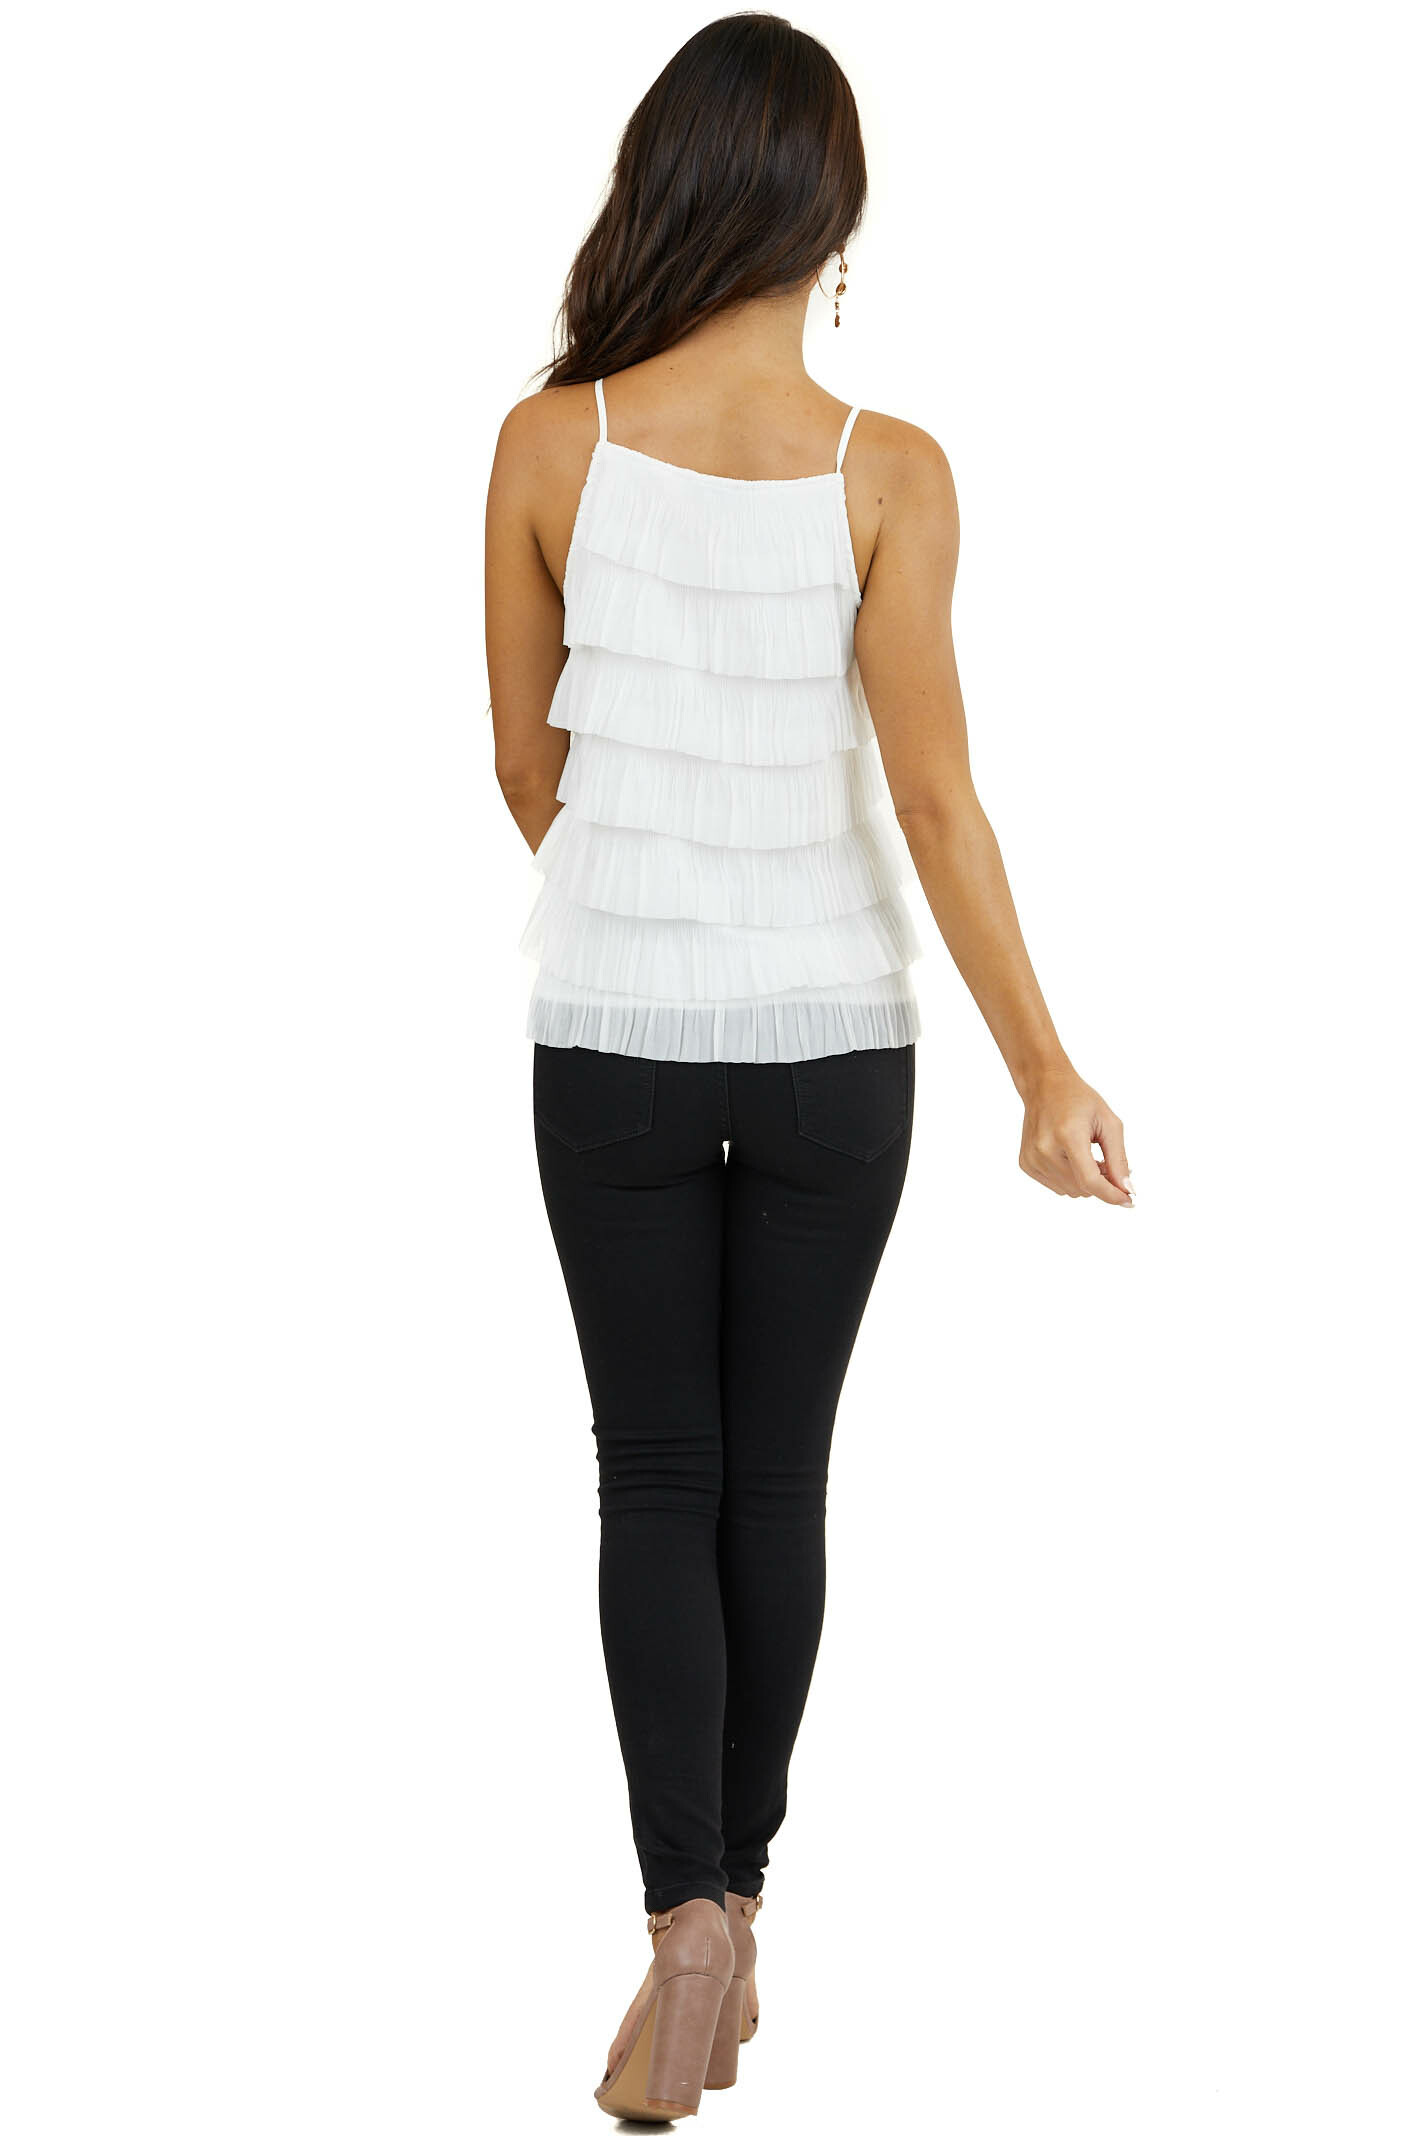 White Woven Top with Ruffle Tiers and Spaghetti Straps